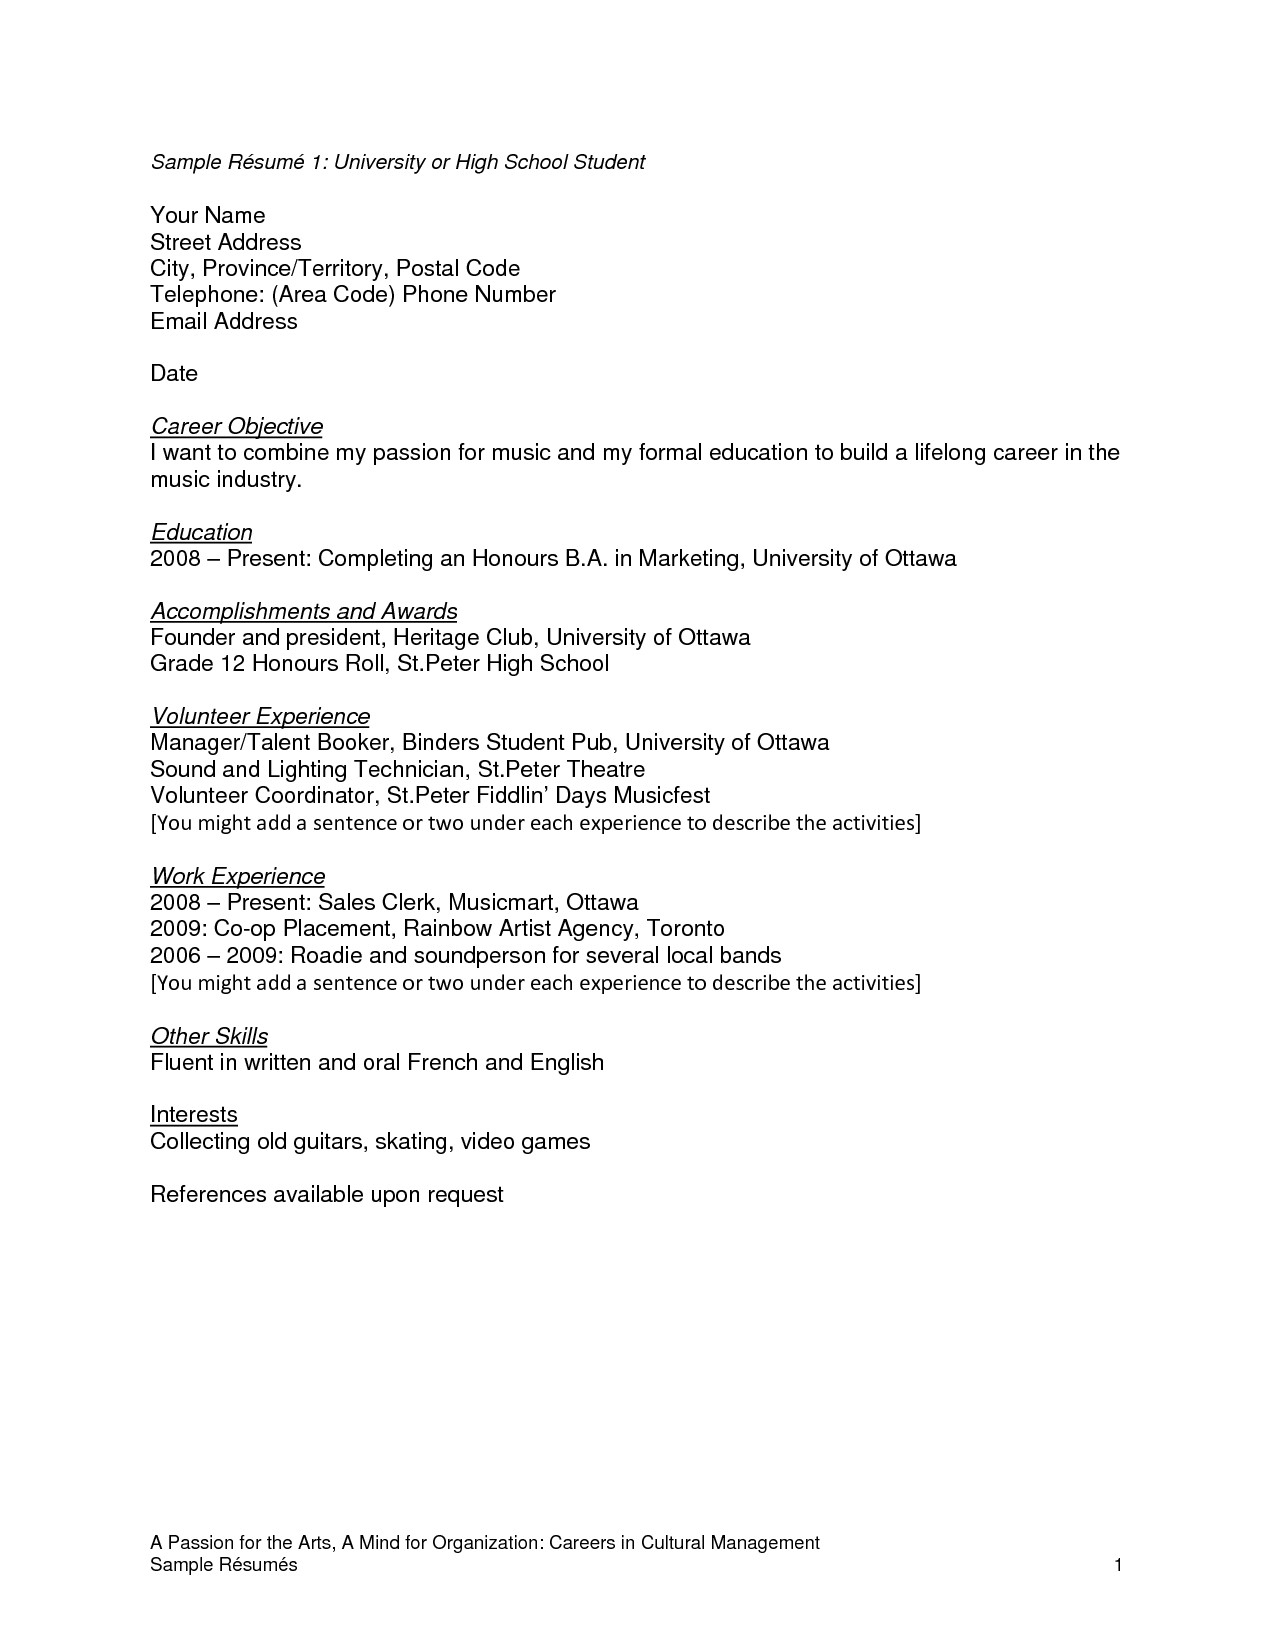 Resume for Music Industry - 17 Music Industry Resume